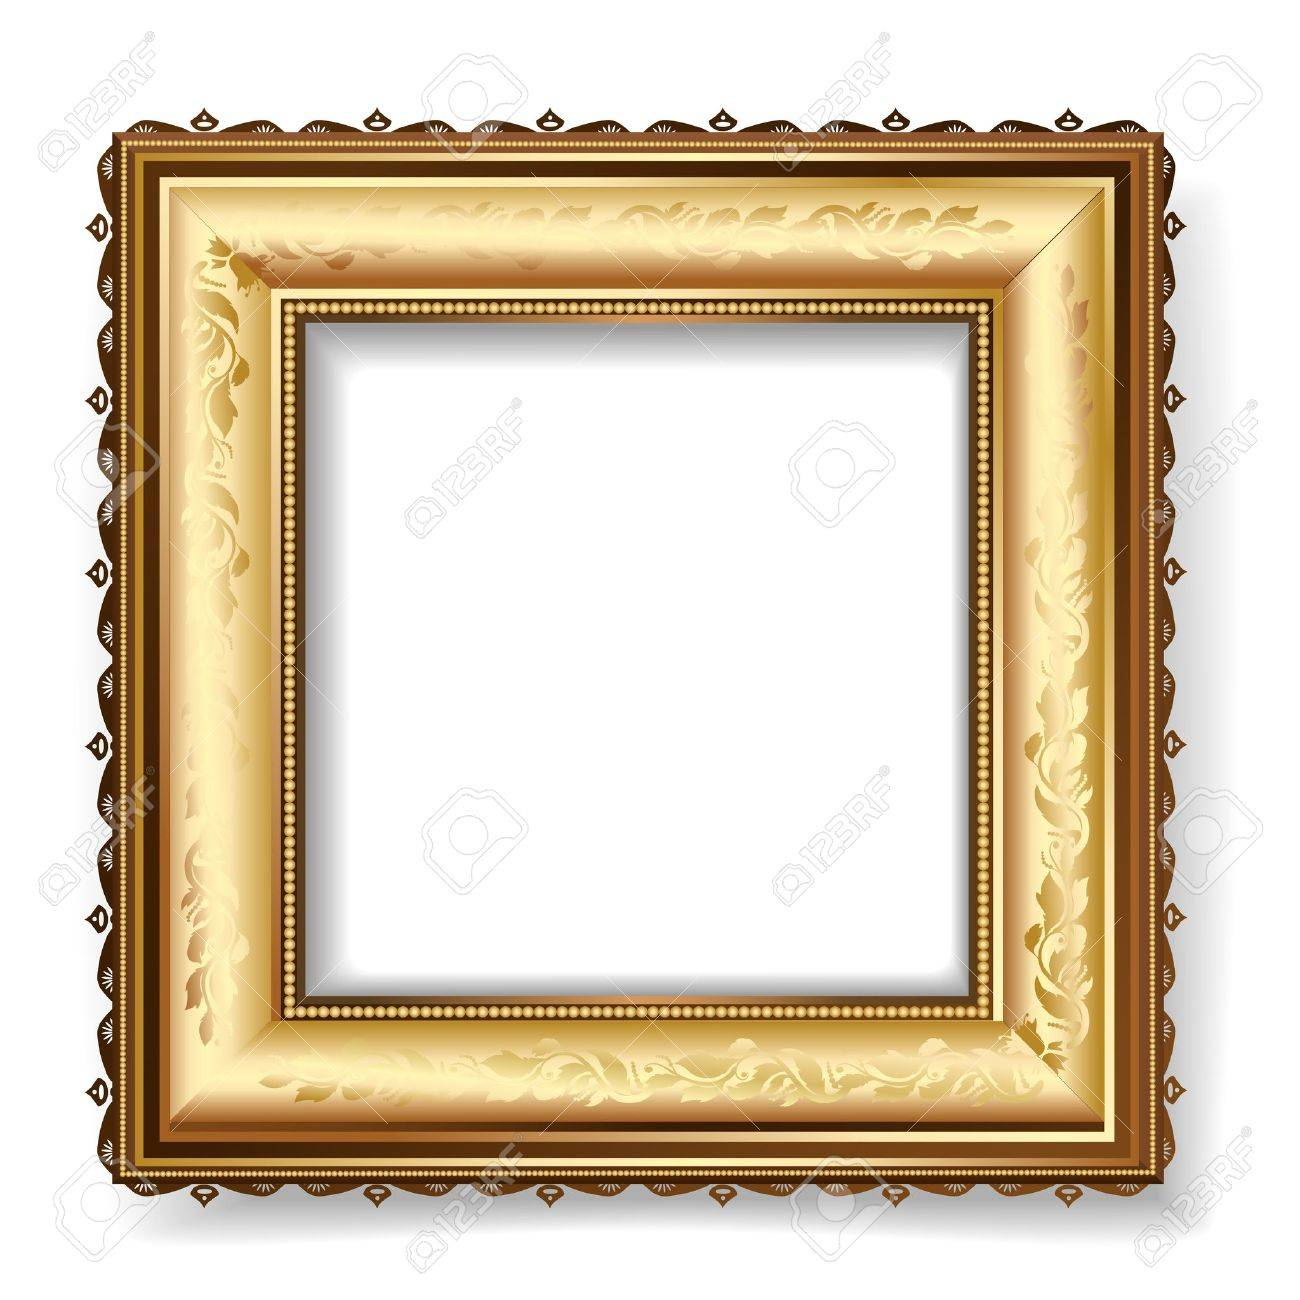 Retro Frame With Gold Leaf Royalty Free Cliparts, Vectors, And Stock ...